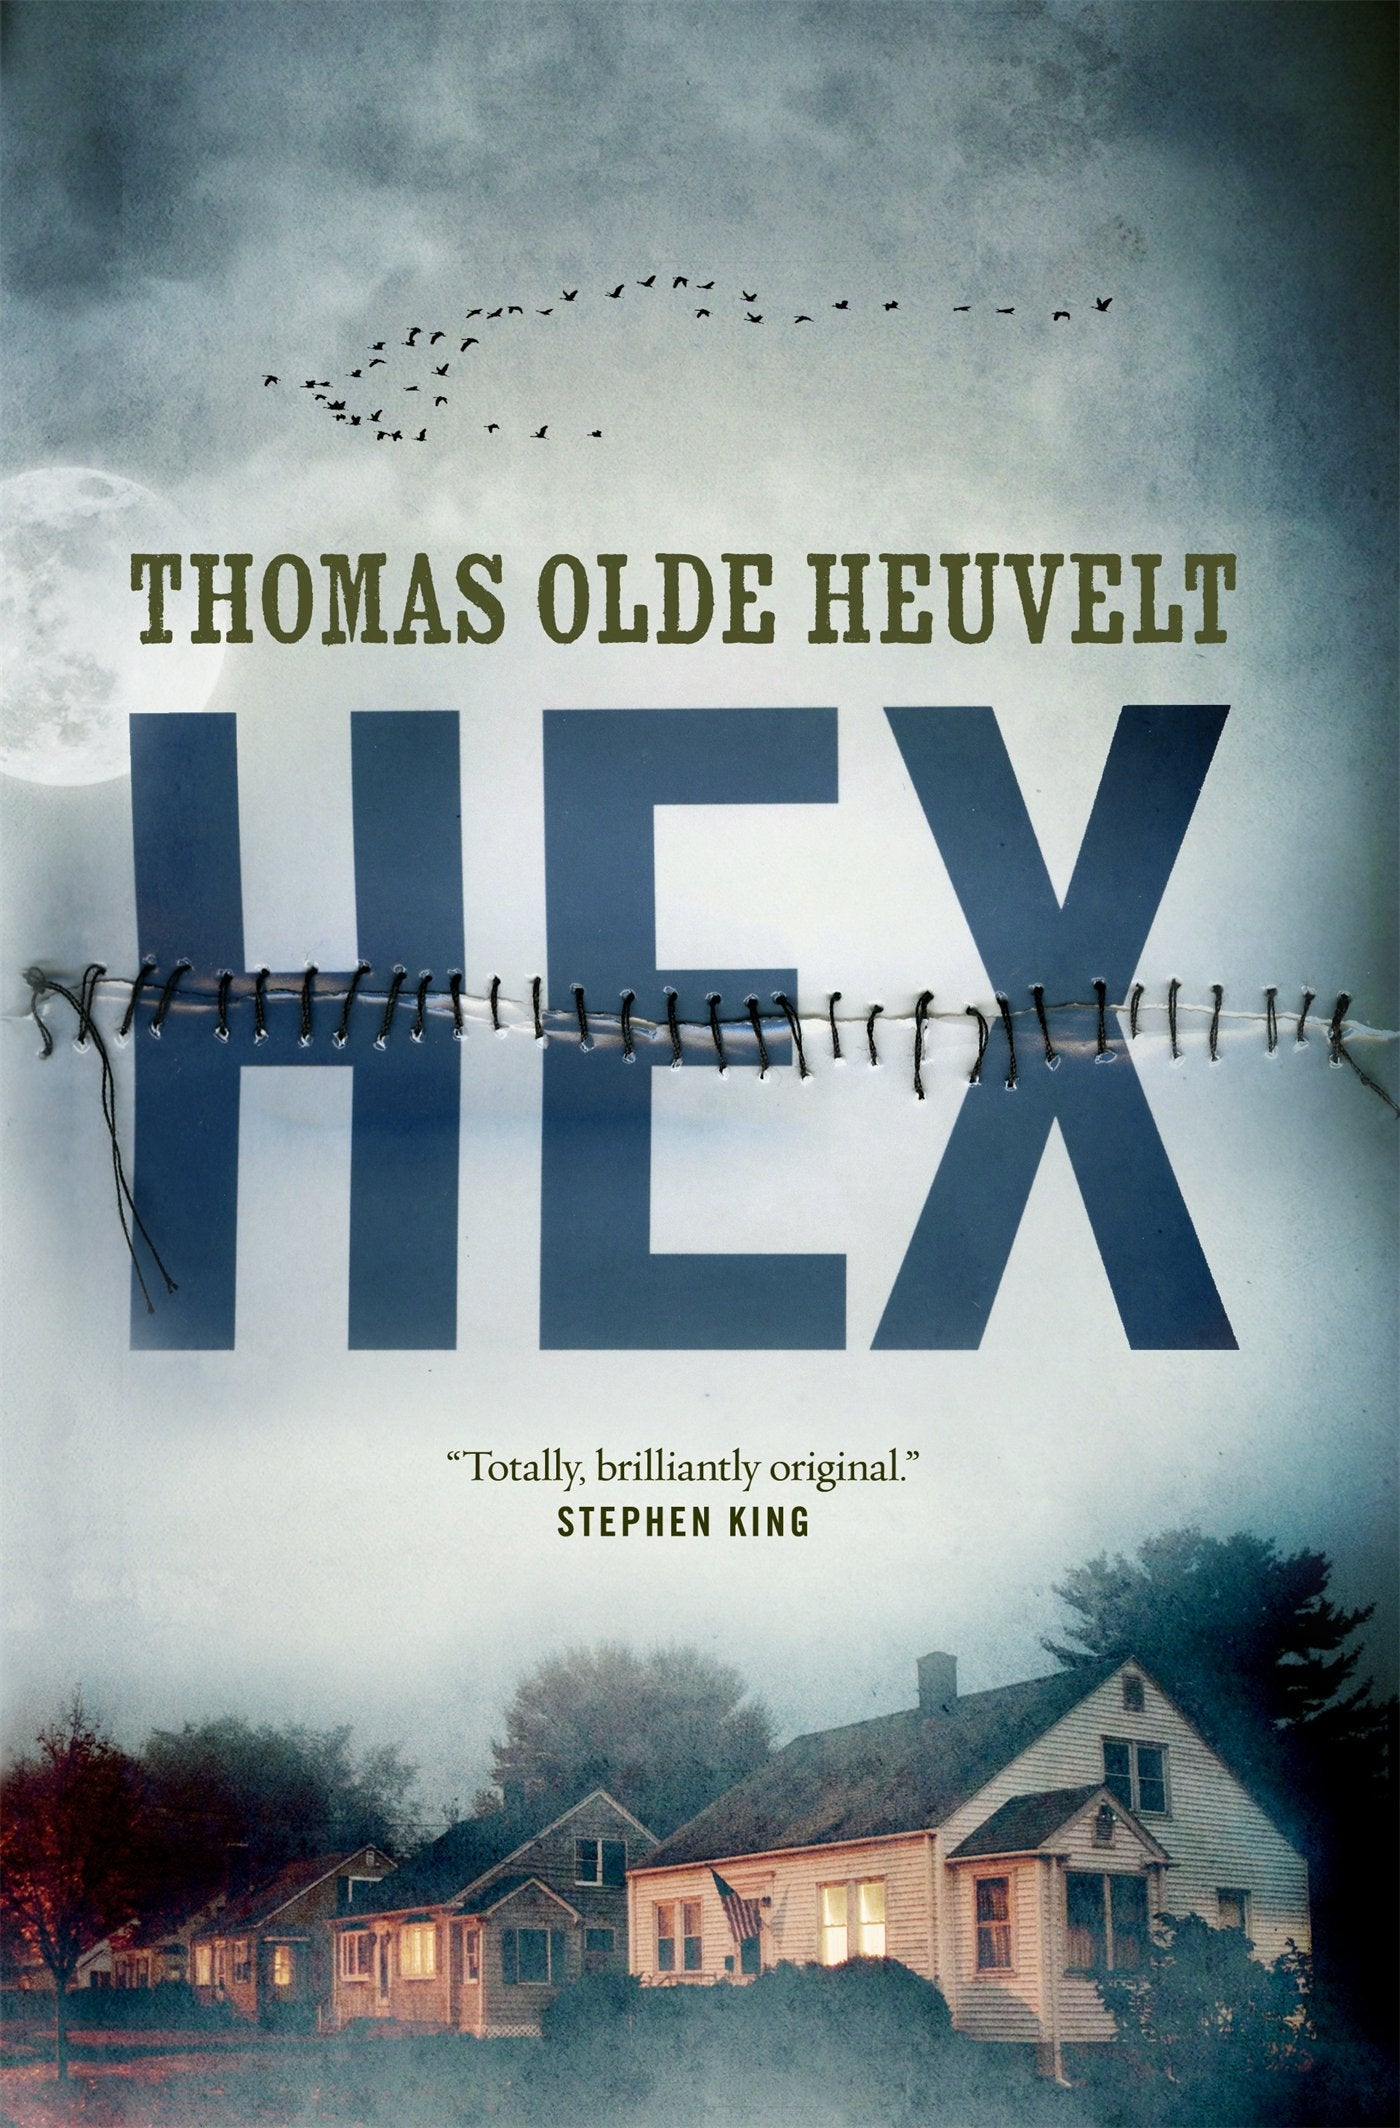 Kallie & Matt's Side By Side Review of HEX by Thomas Olde Heuvelt